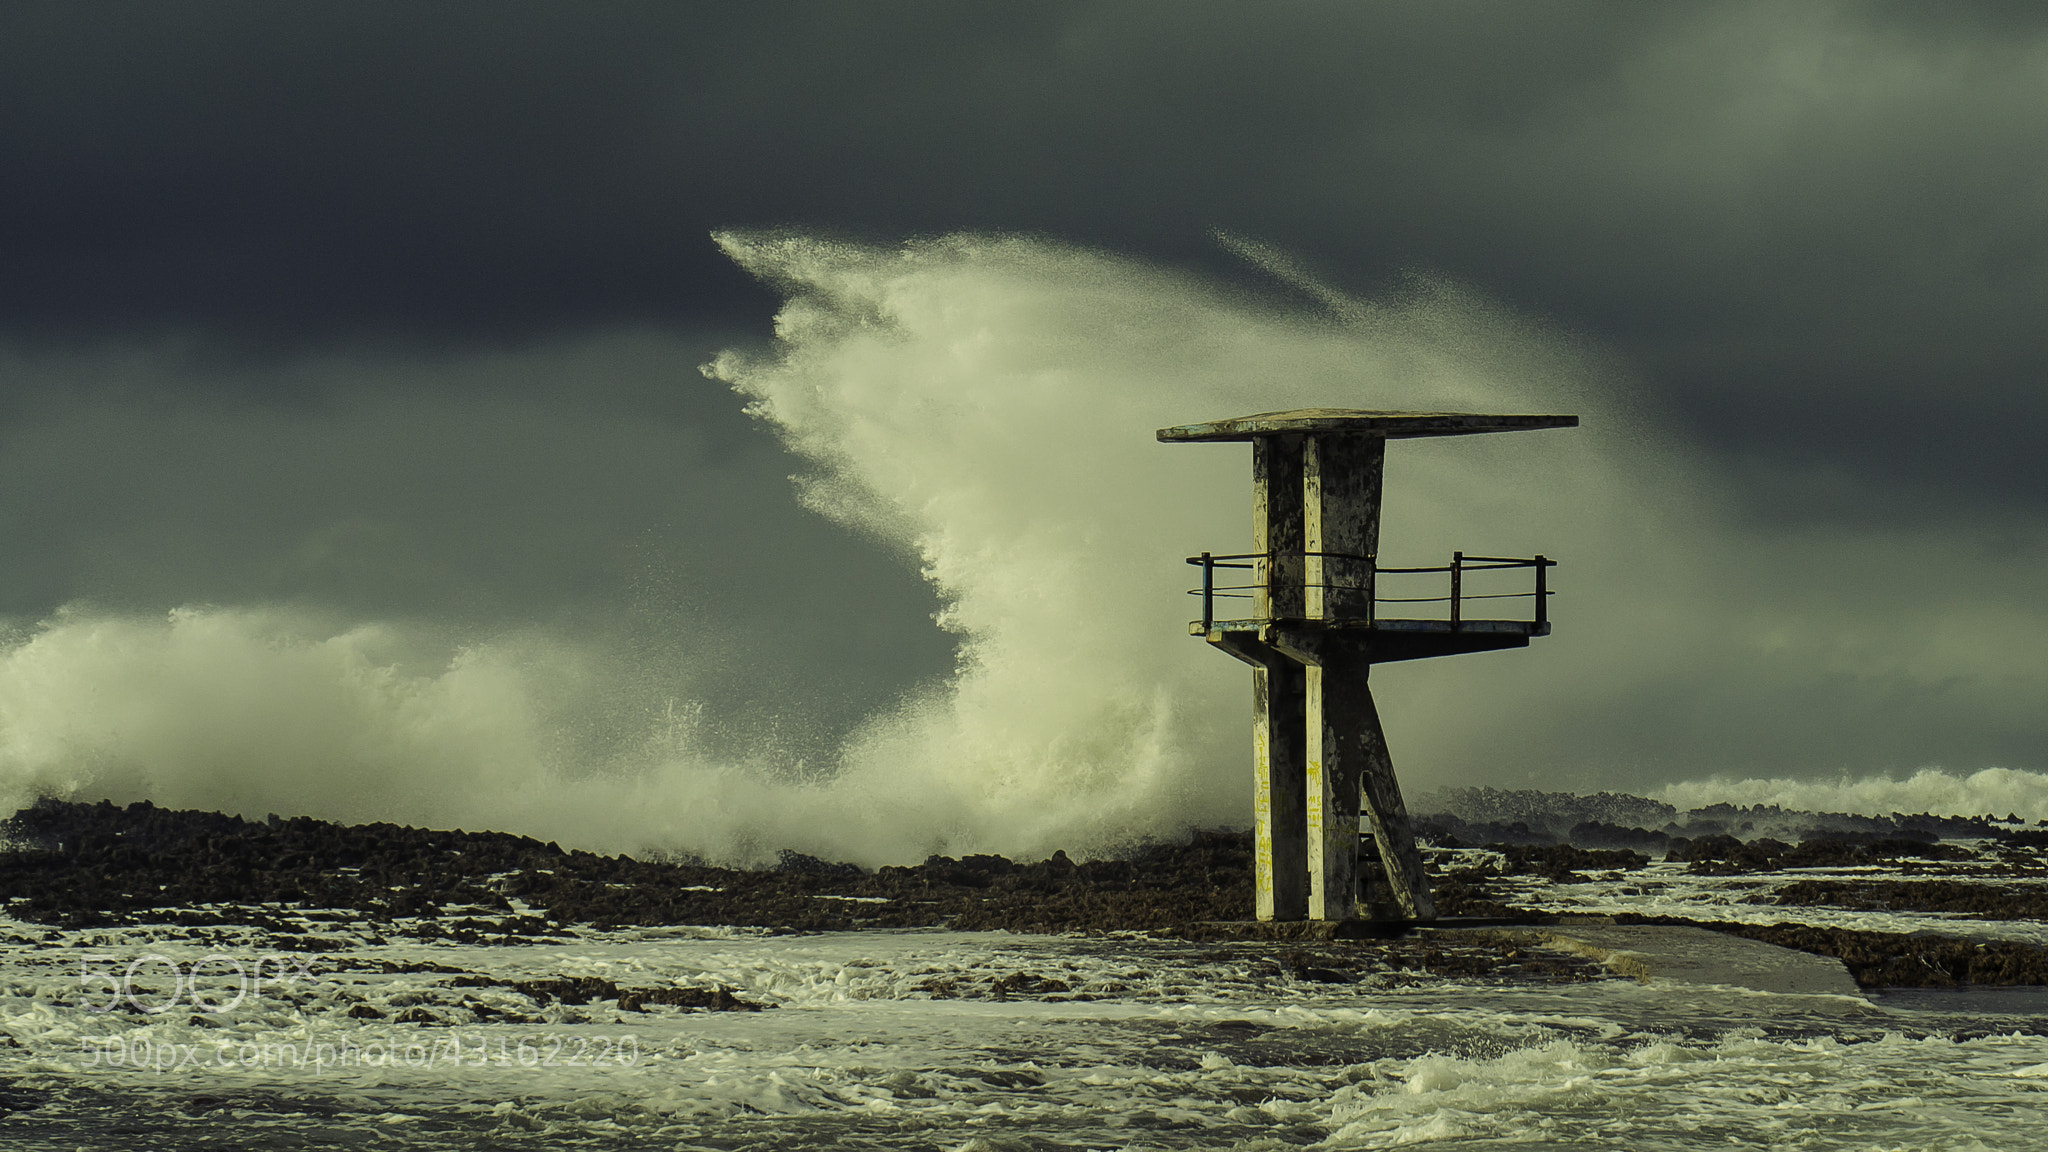 Photograph .... The october storm at Temara beach - 2 by Amine Fassi on 500px